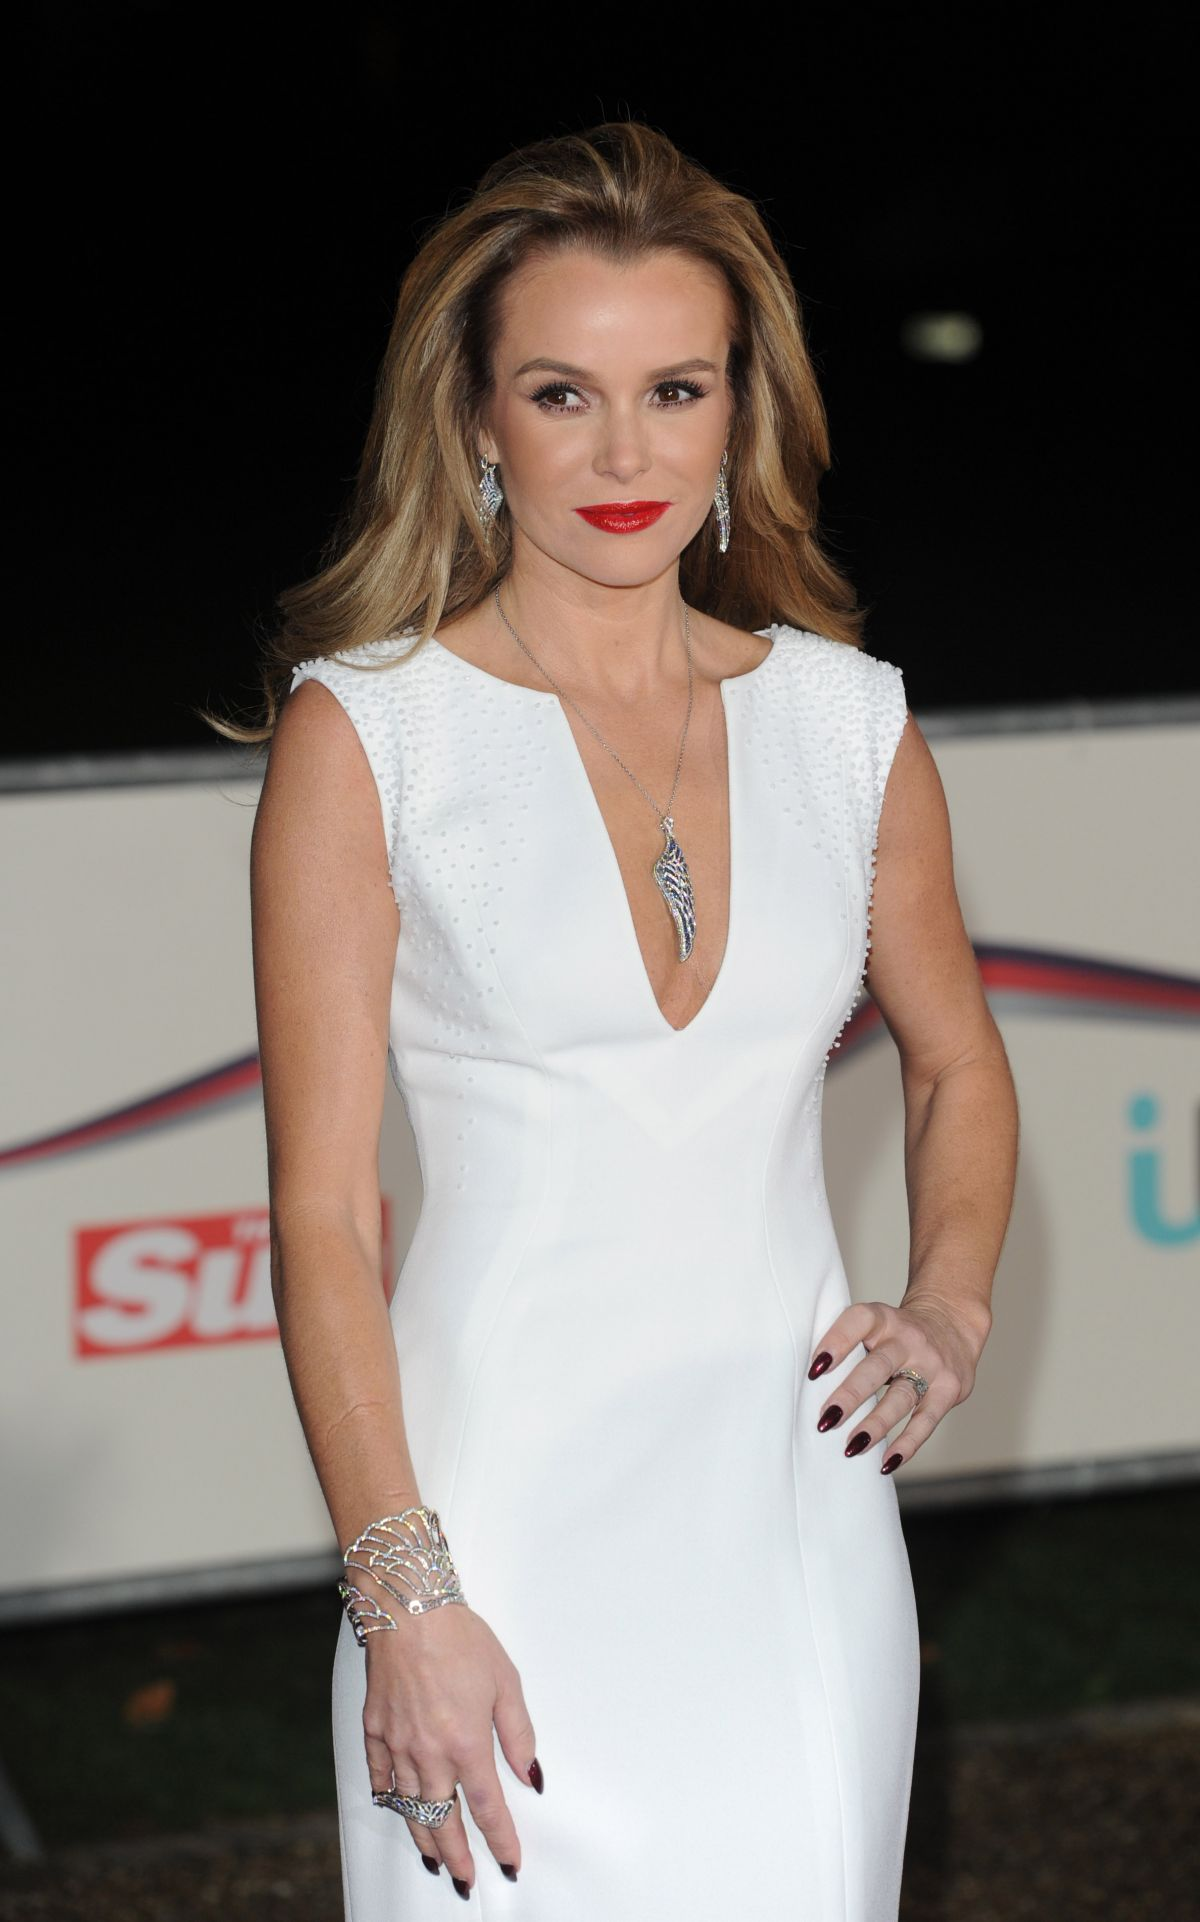 AMANDA HOLDEN at A Night of Heroes: The Sun Military Awards in London